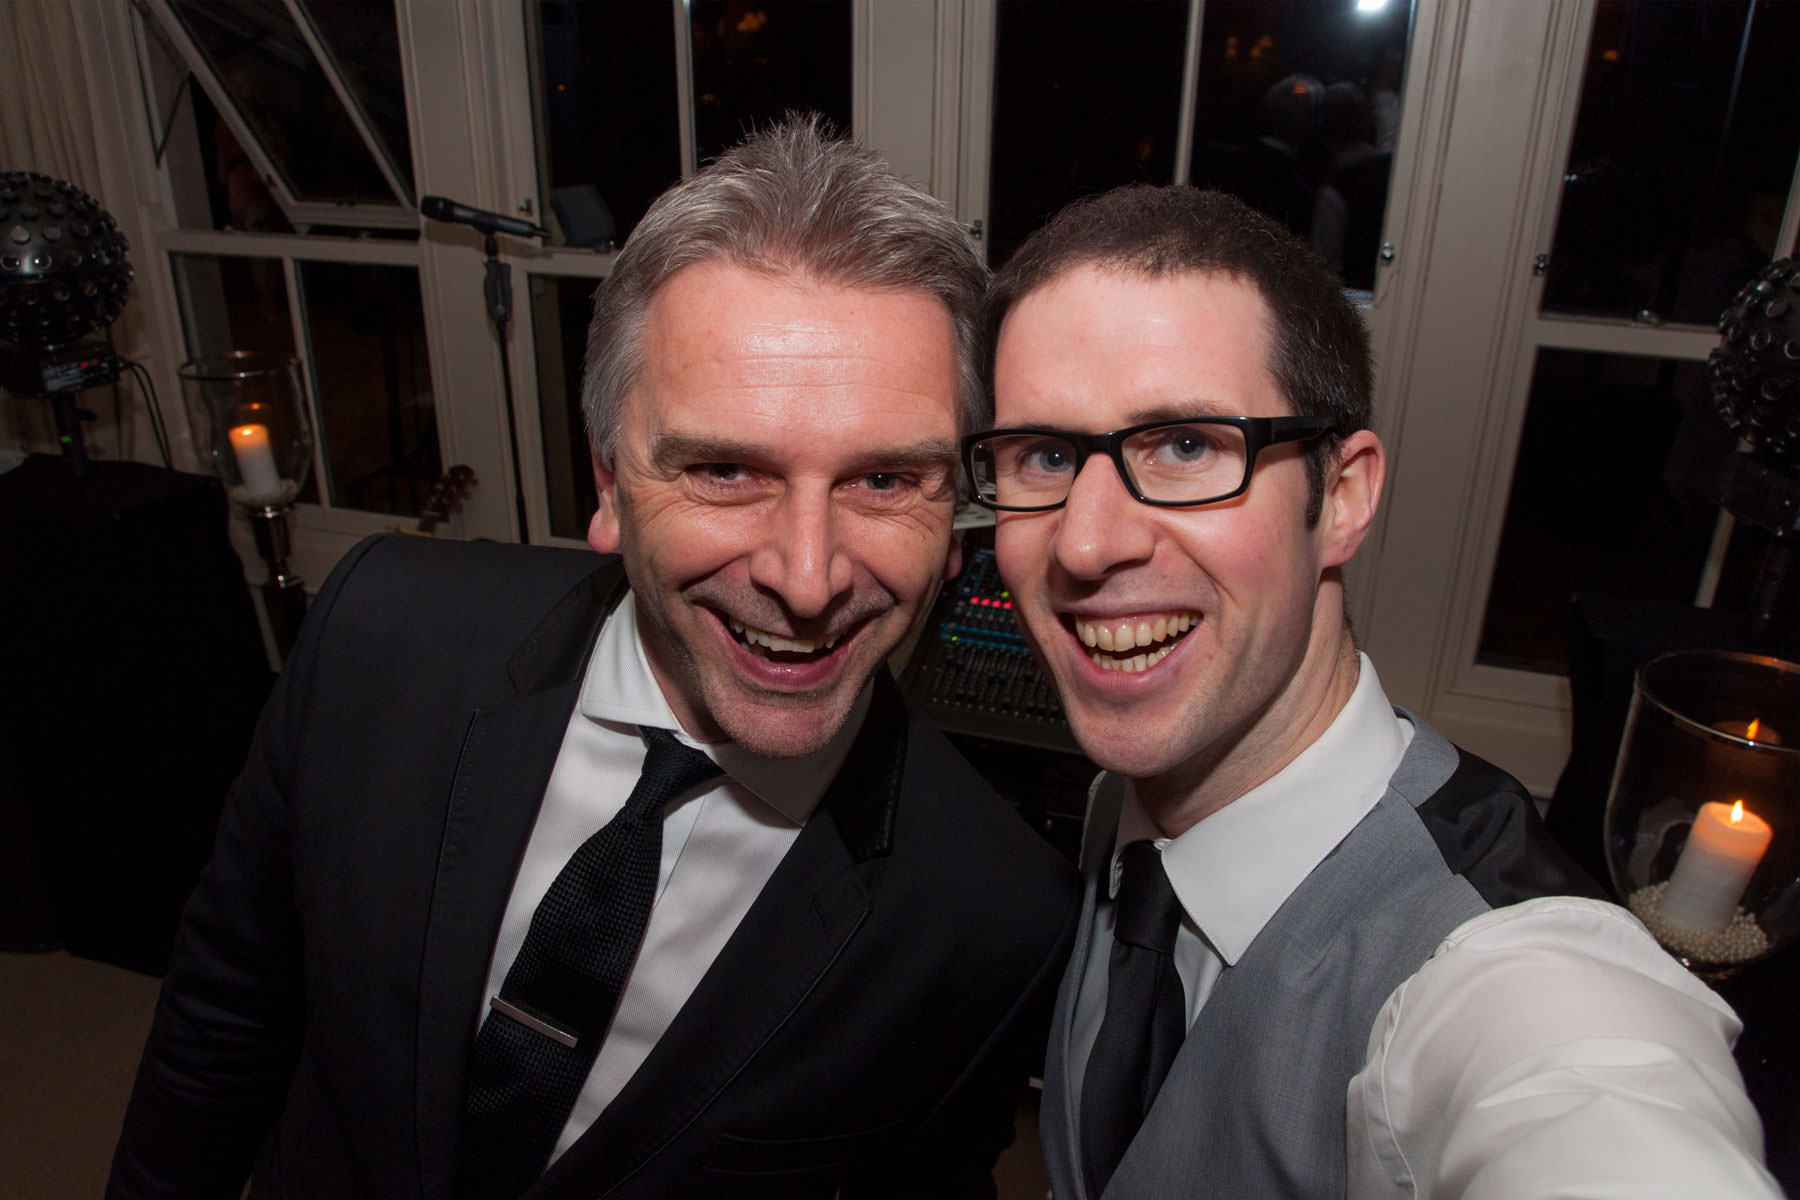 Selfie of Paul Guard and Adam Carr at a Wedding.